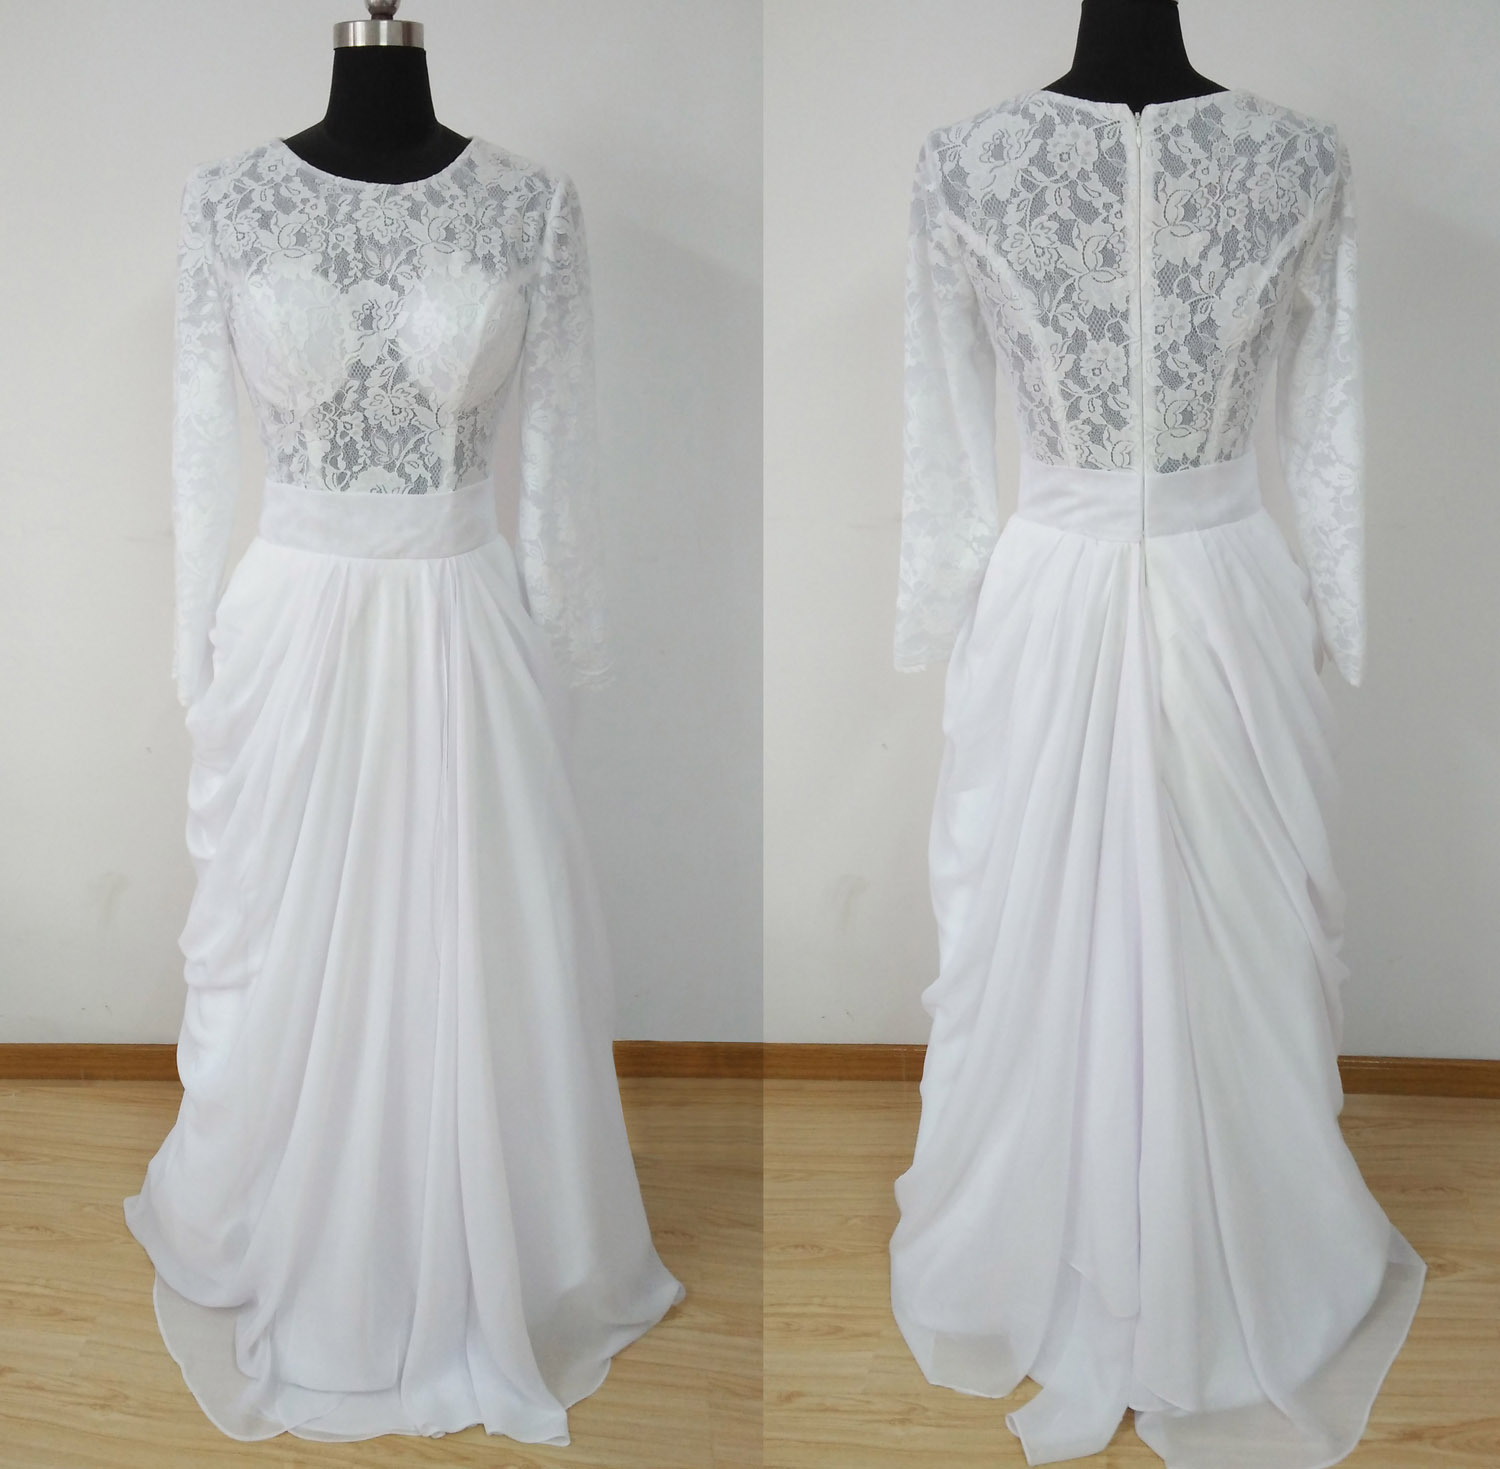 O-neck Lace Wedding Dress Long Sleeves